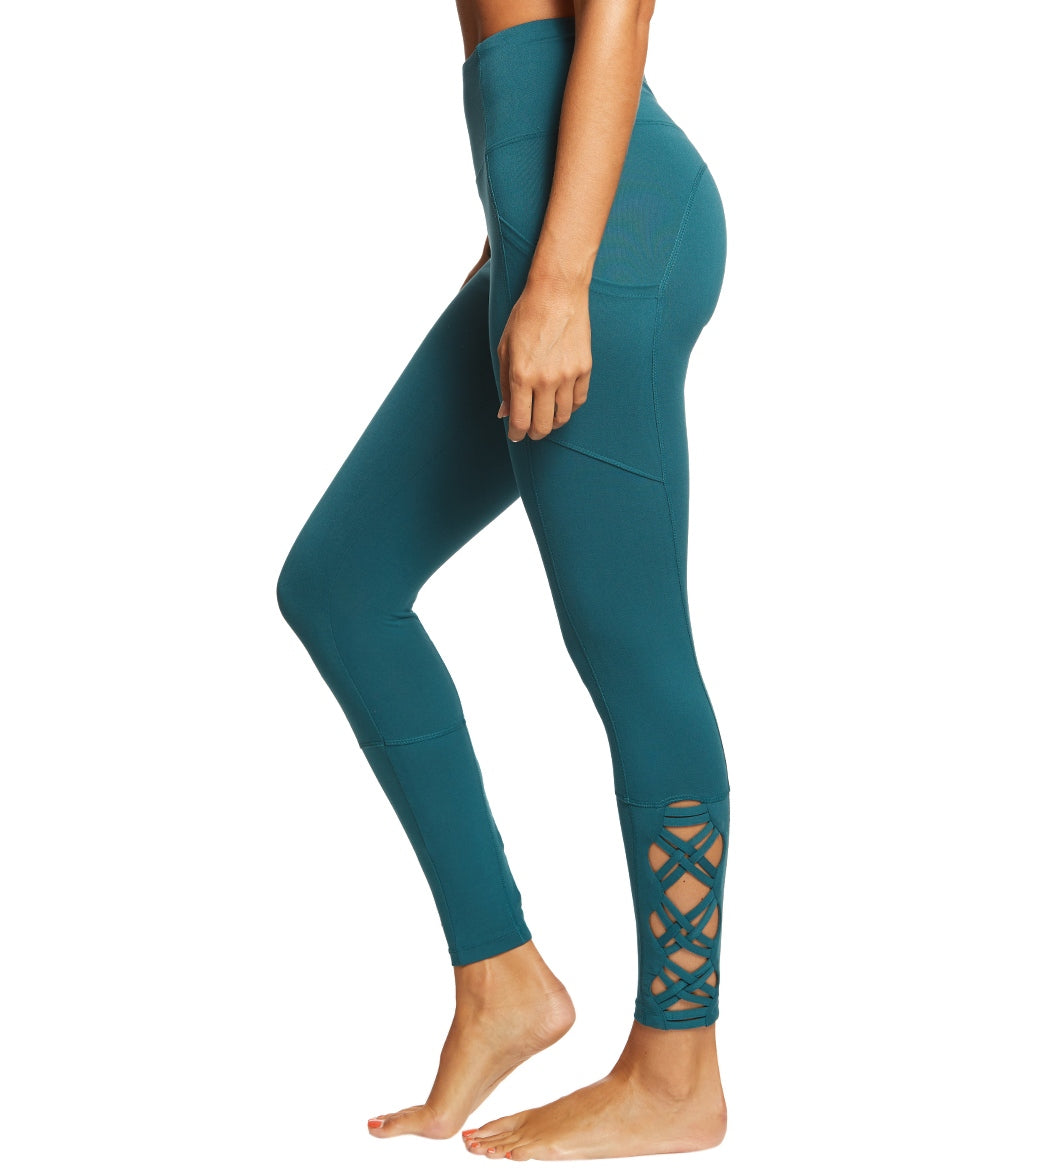 f904e0b85f69f6 Marika Tummy Control High Waisted Laced Yoga Leggings With Pockets at  YogaOutlet.com